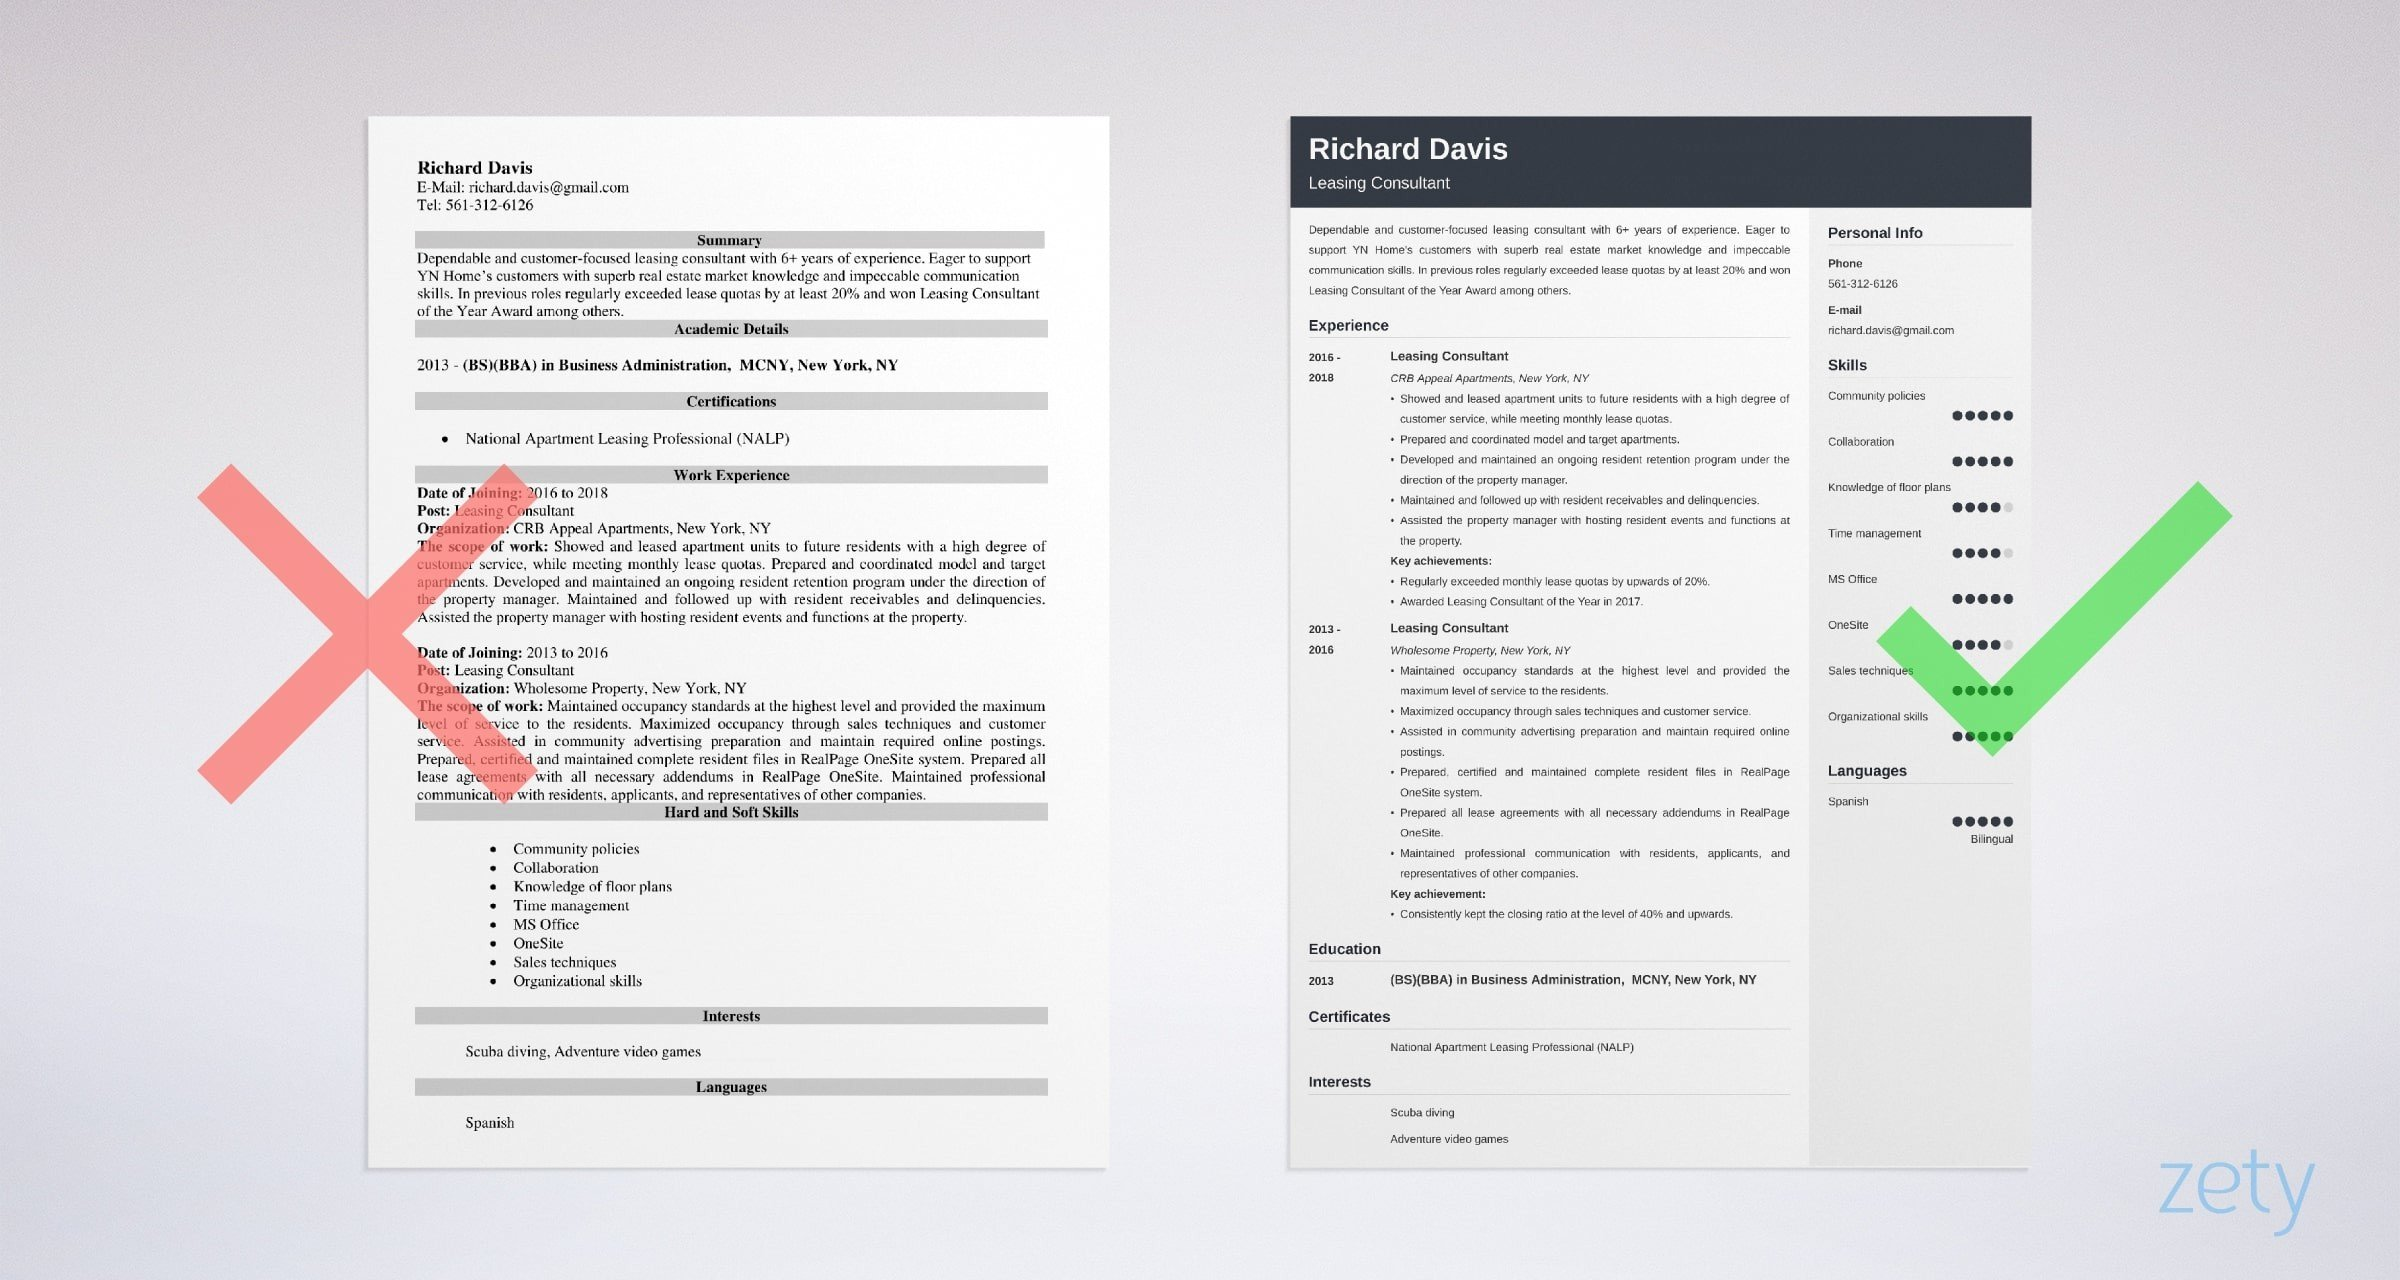 leasing consultant resume examples guide sample example microsoft word templates Resume Leasing Consultant Resume Examples